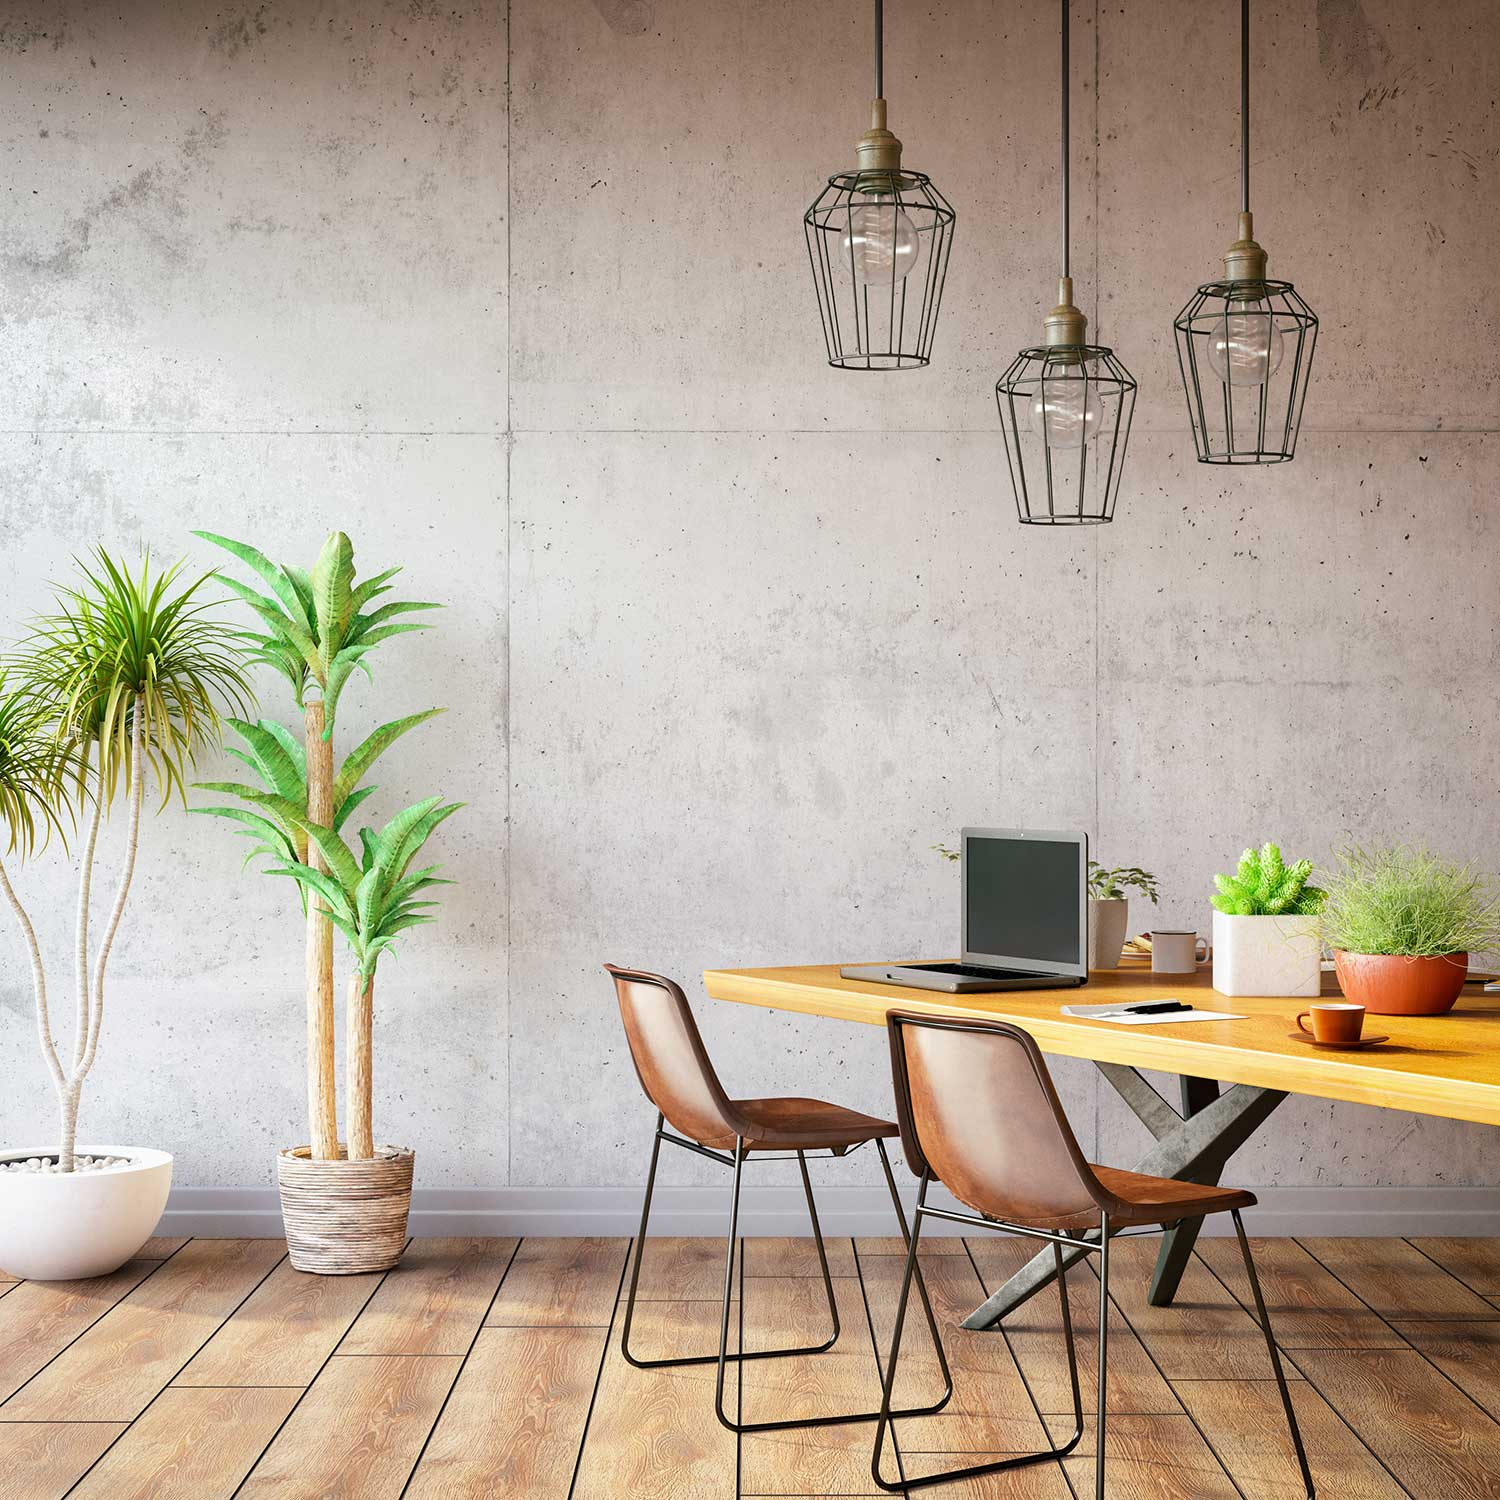 Workspace with plants and desk